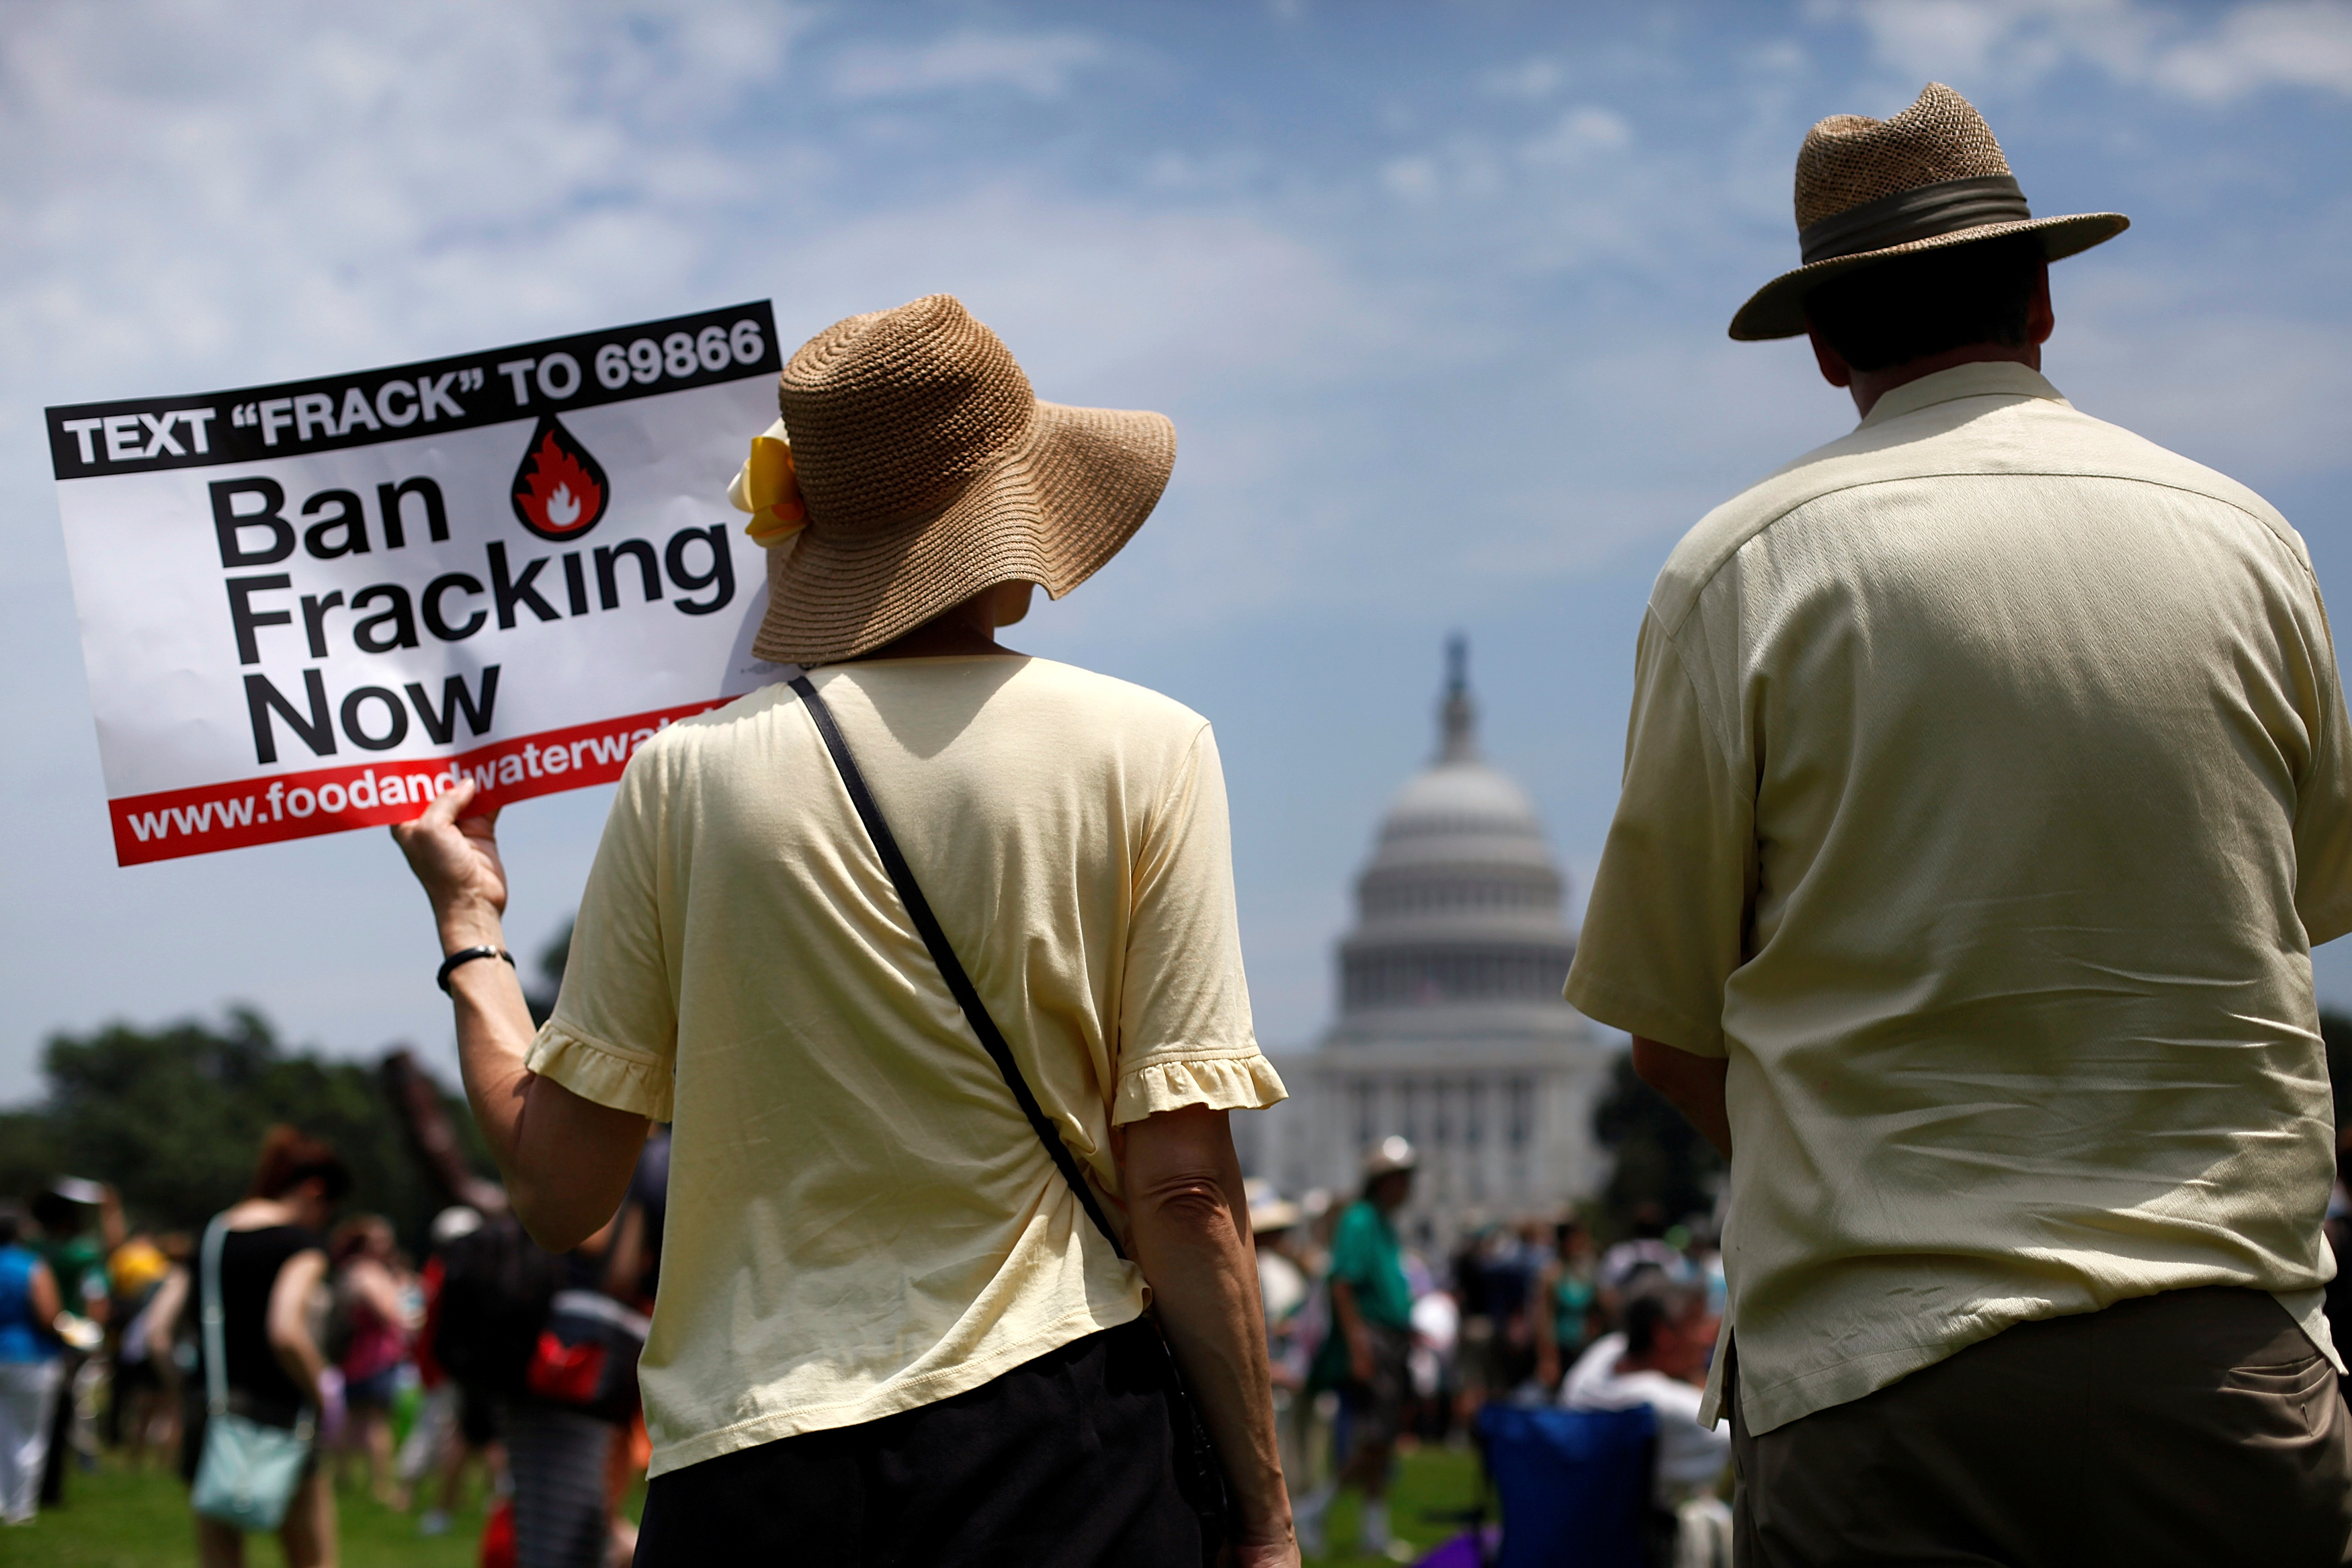 Protesters take part in a rally against U.S. fracked gas exports from the proposed Cove Point facility in Maryland, at a demonstration by several environmental organizations and activists, at the National Mall in Washington July 13, 2014. REUTERS/Jonathan Ernst/File Photo